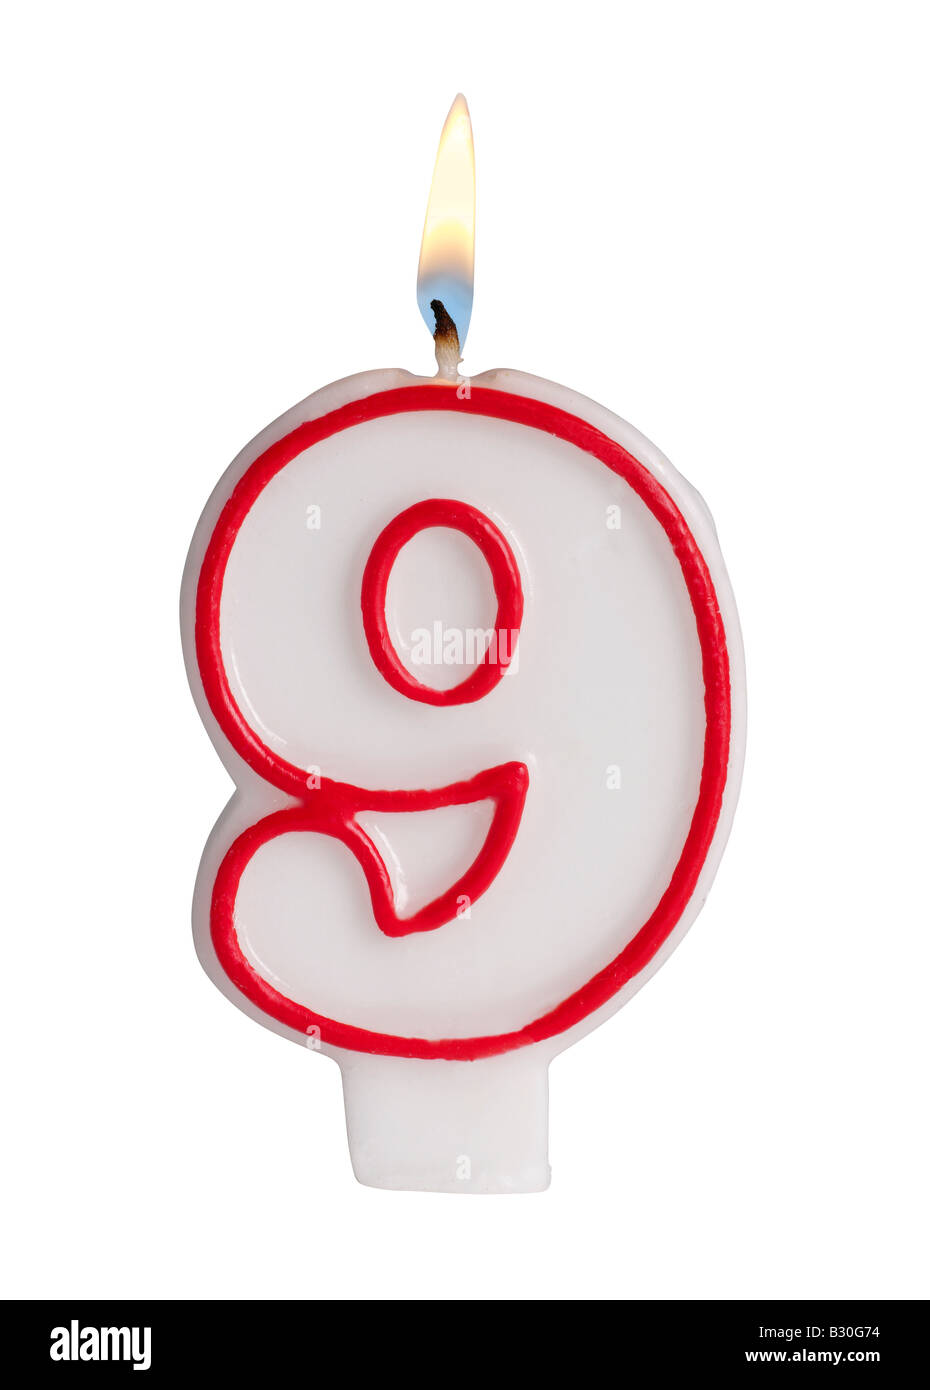 Number 9 candle - Stock Image